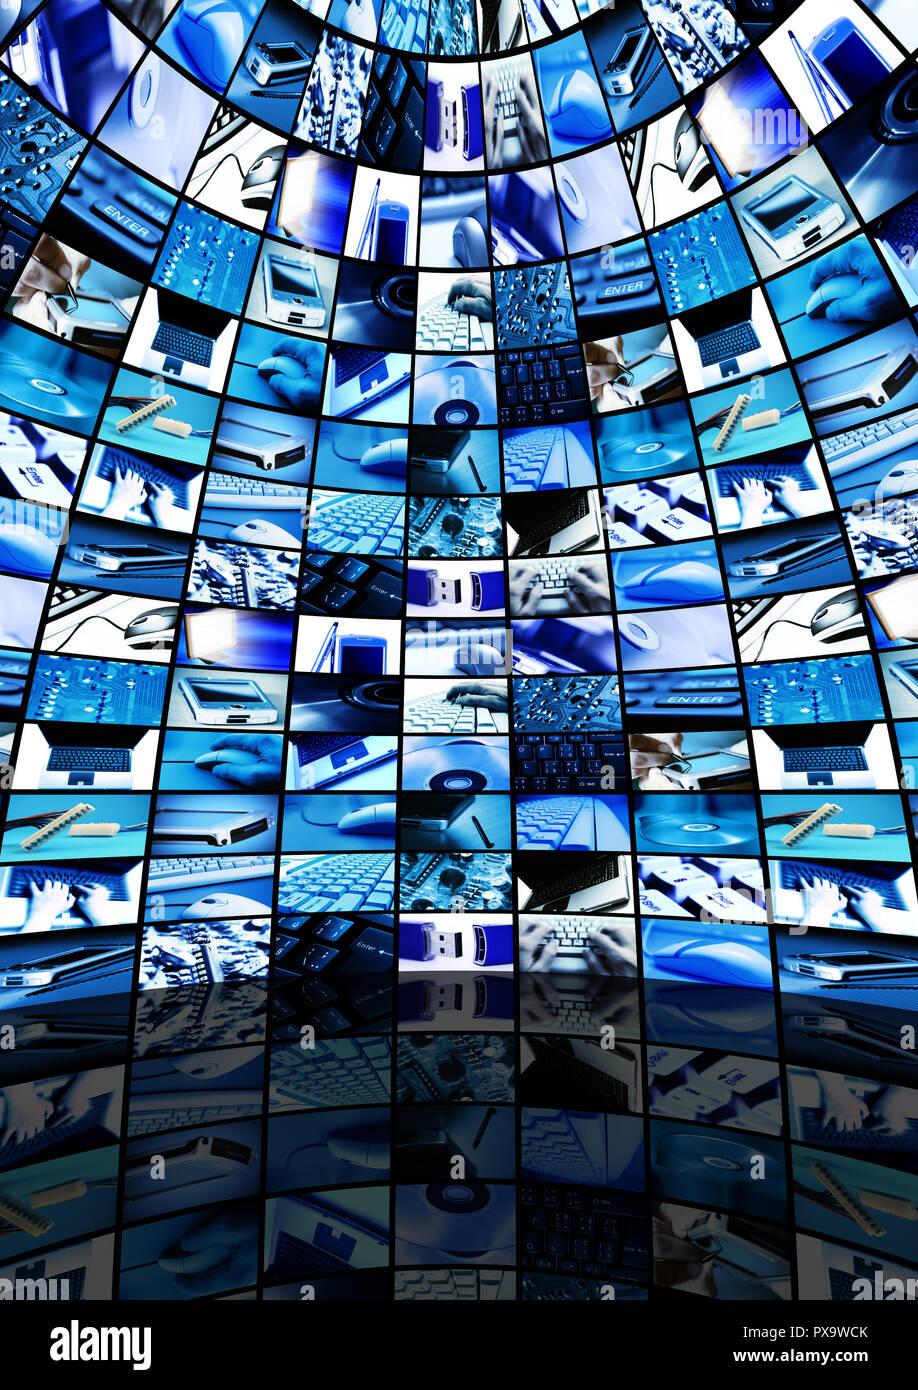 room with many screens with technology images - Stock Image